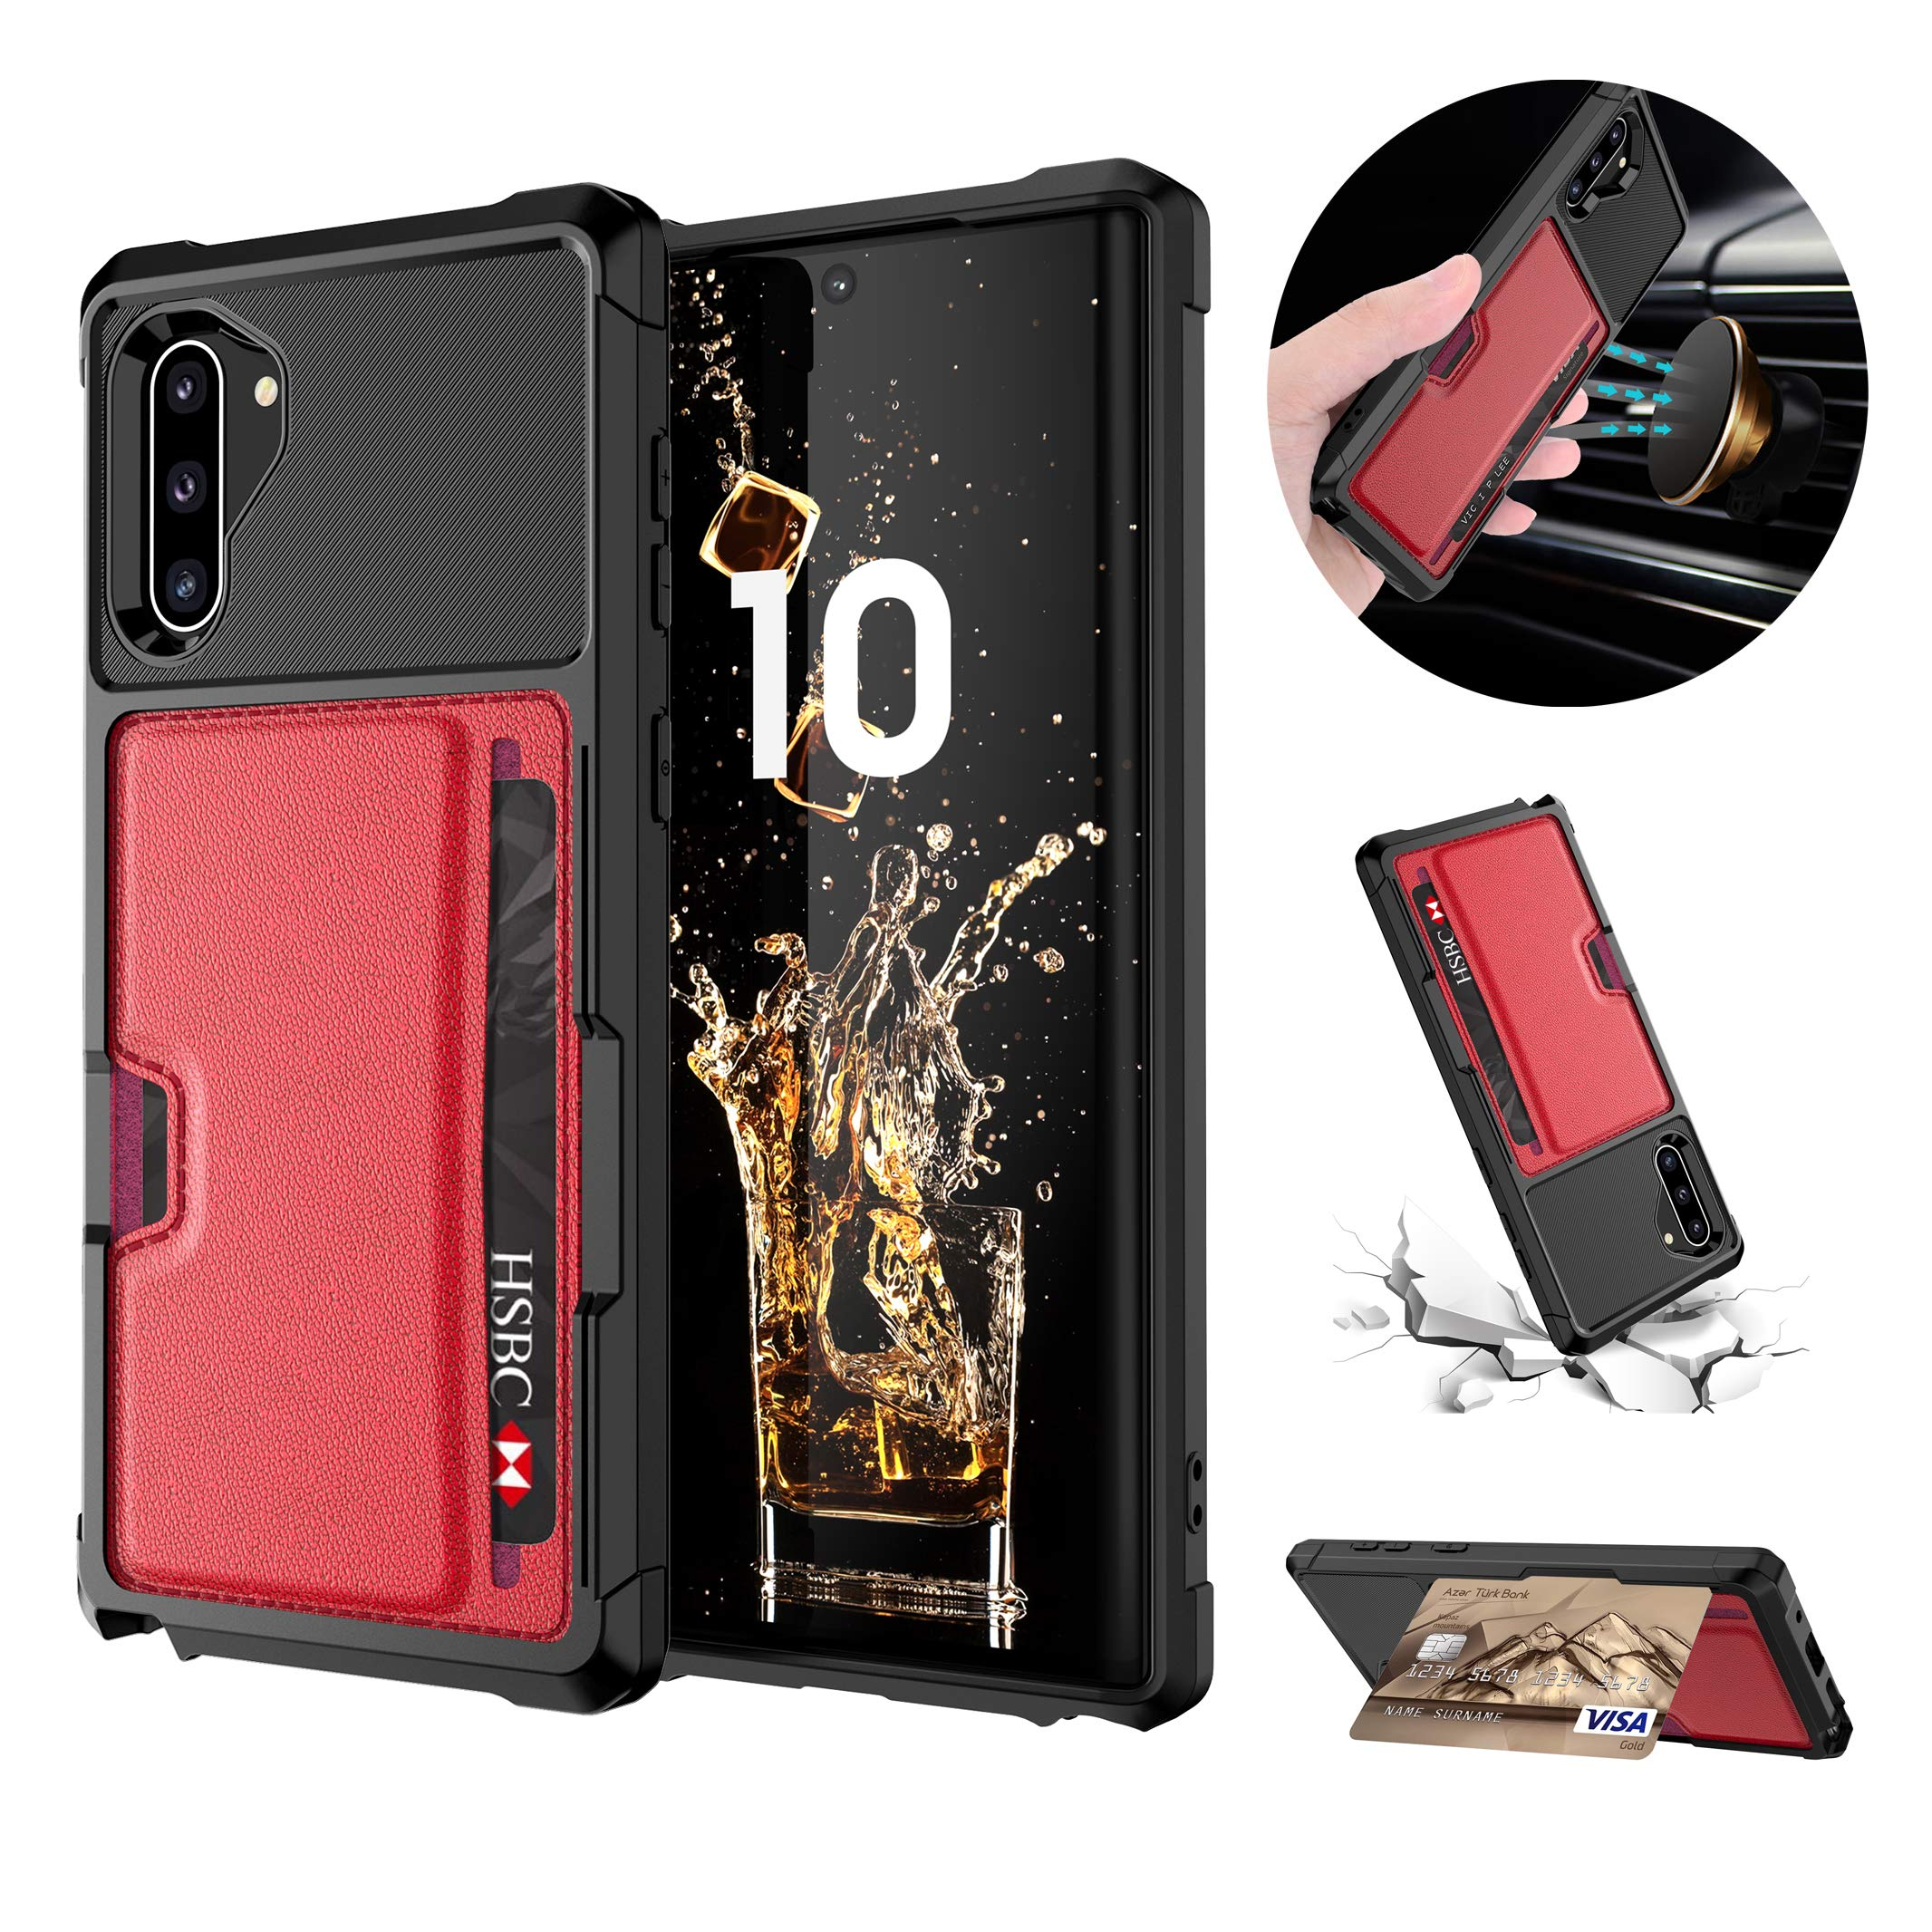 Tznzxm Galaxy Note 10 Wallet Case Slim Fit Non Slip Credit Card Kickstand Rubber [Work with Magnetic Car Mount] Durable Flip Shockproof Full Body Protective Cover for Samsung Galaxy Note 10 5G Red by Tznzxm